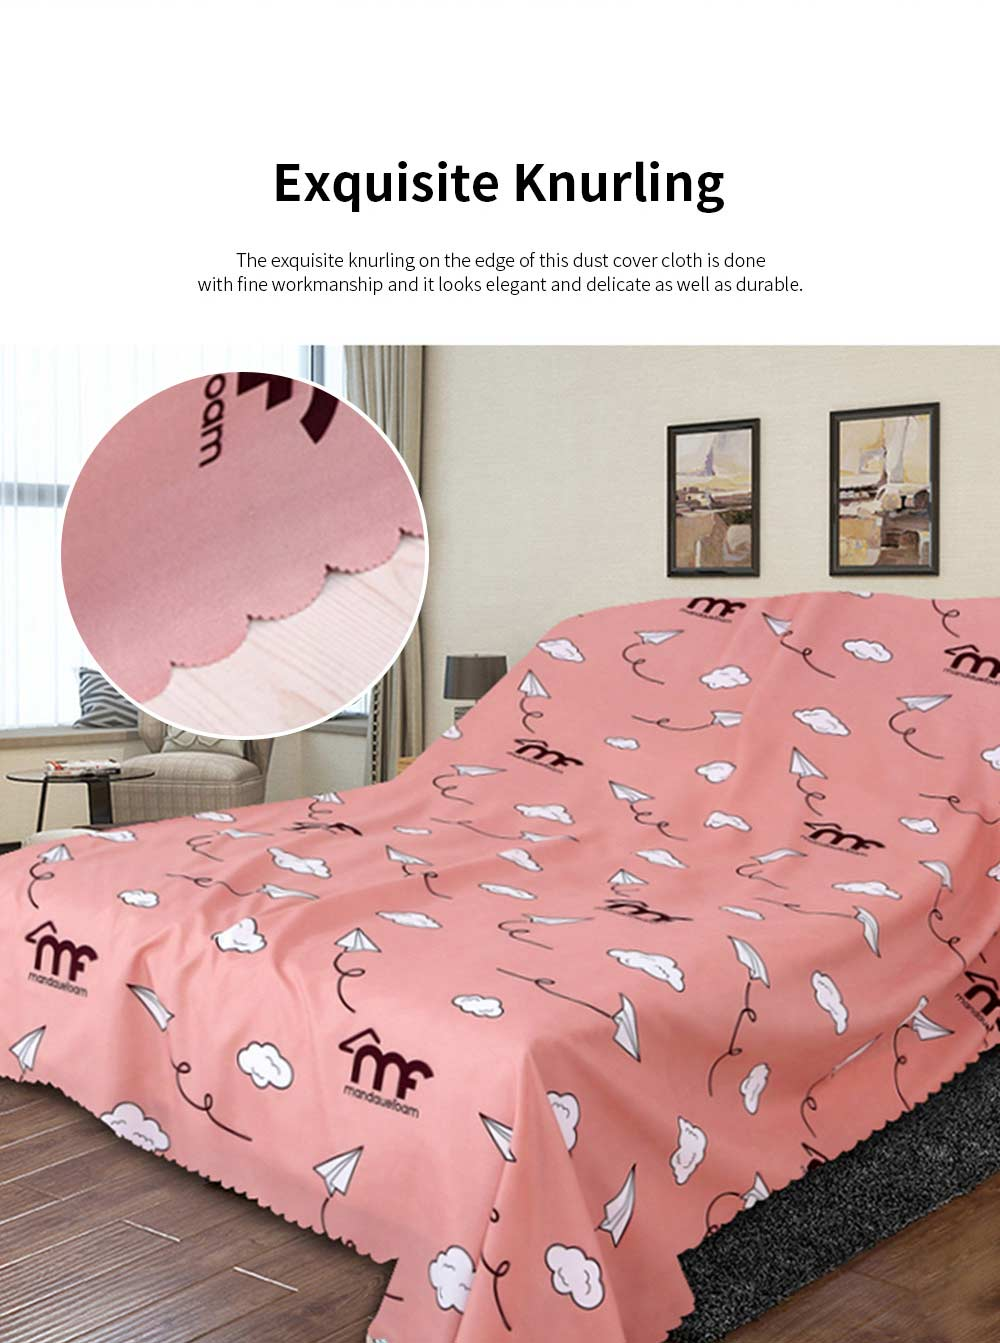 Pure Dust Cover for Family Use Fashionable Durable Dust Cloth Large Size Dense Dust Cover Cloth Dedusting Covers 7